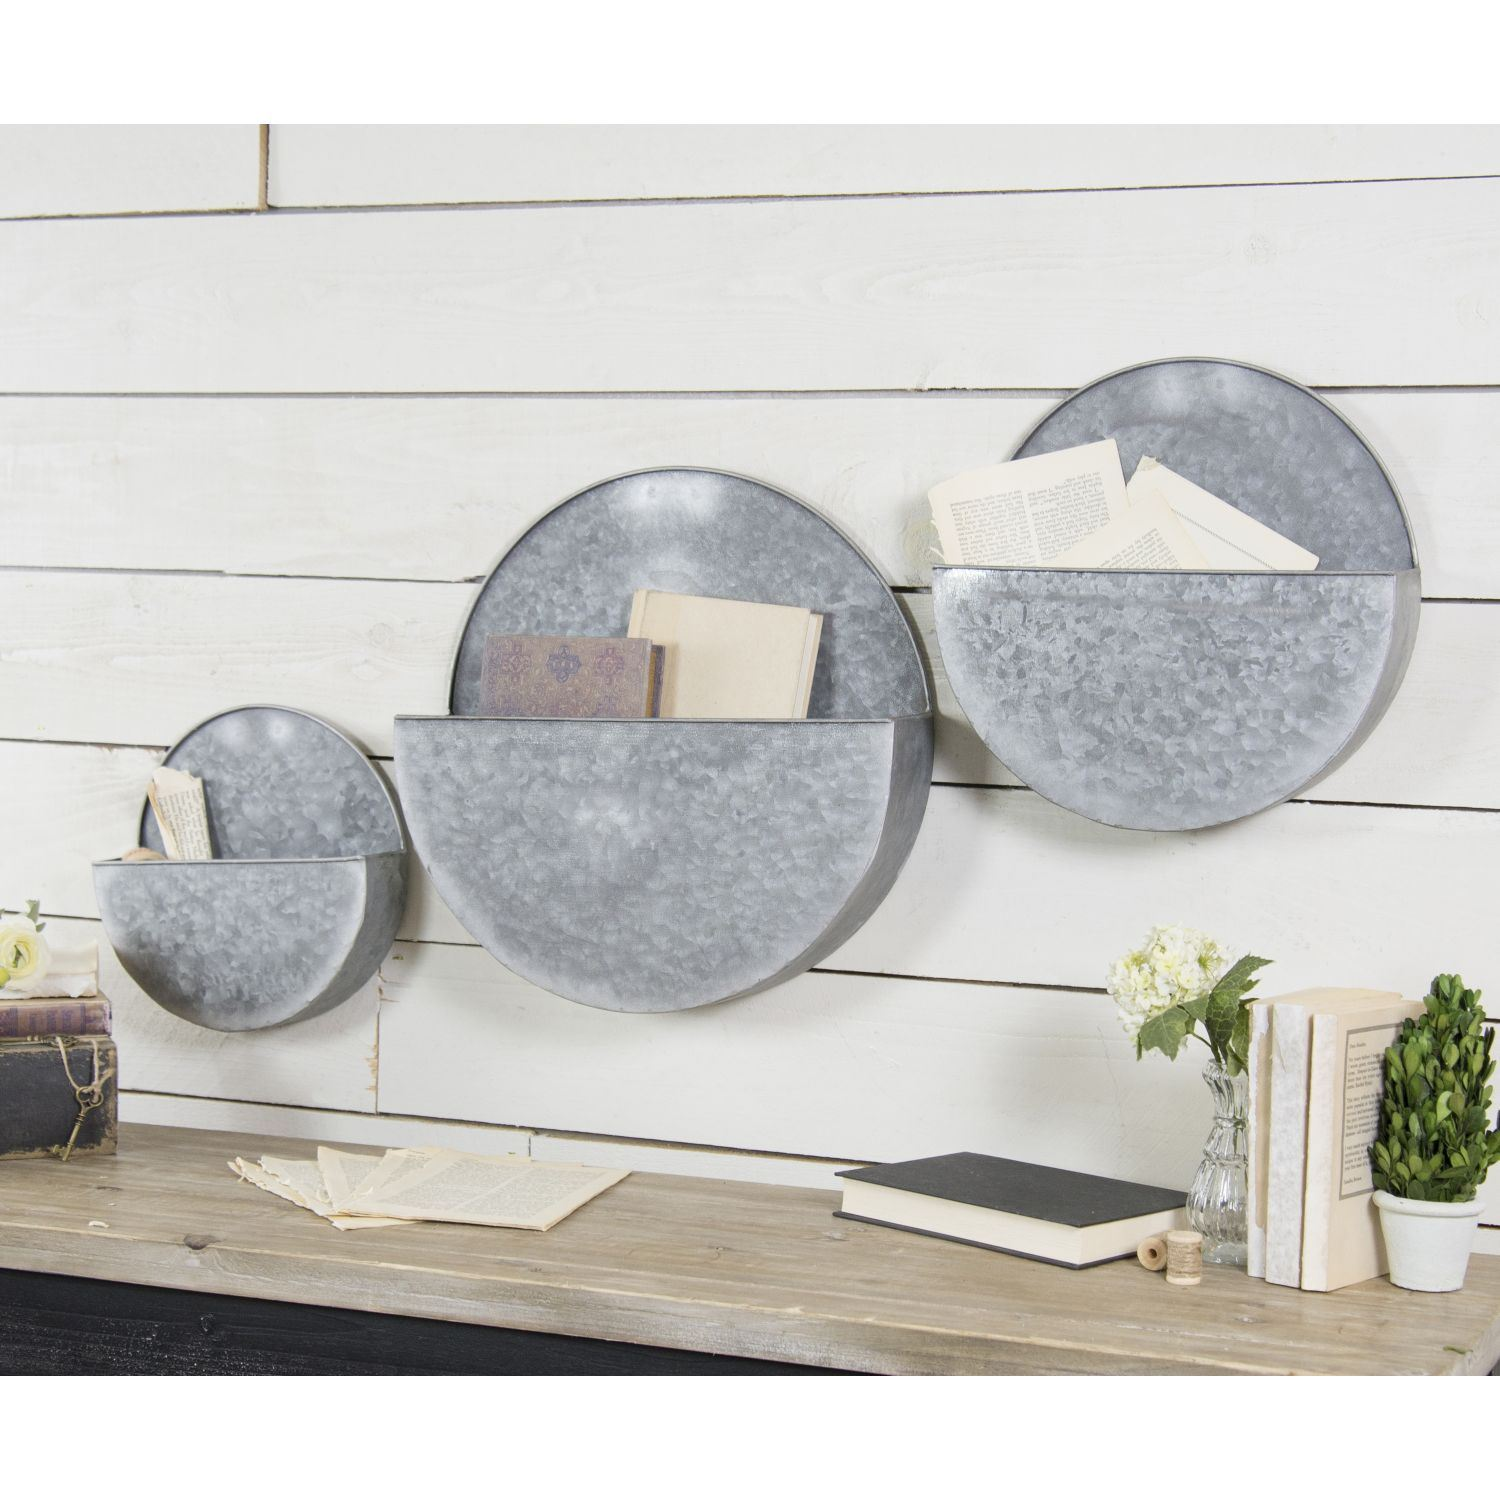 Picture of Set 3 Metal Wall Planters